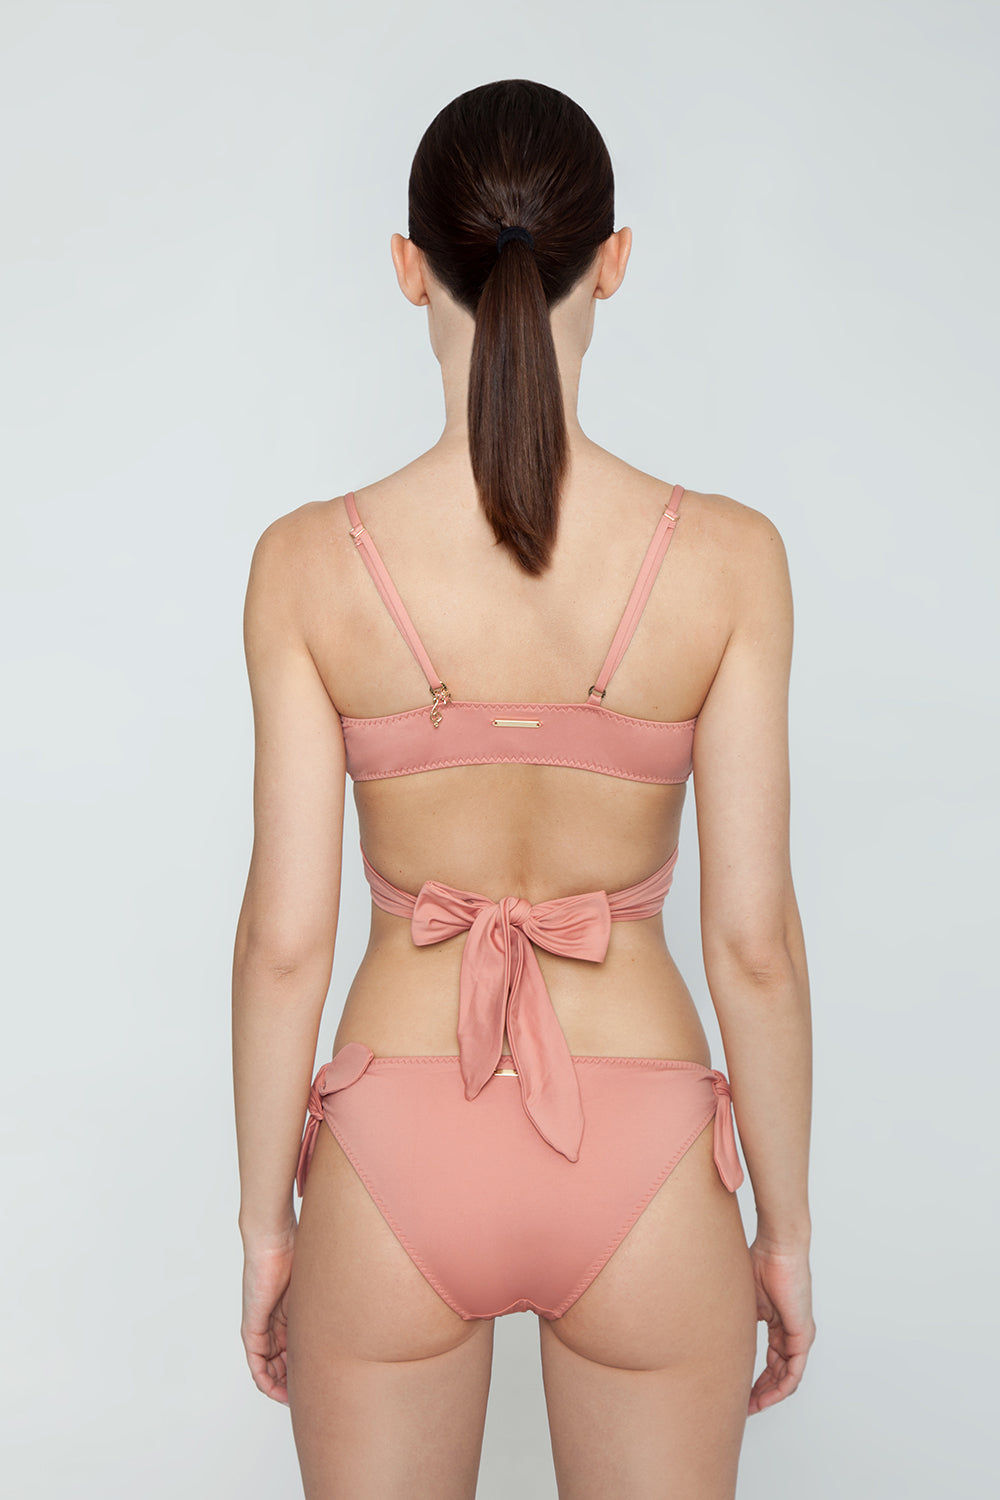 STELLA MCCARTNEY Wrap Bikini Top - Antique Rose Pink Bikini Top | Antique Rose Pink| Stella McCartney Wrap Bikini Top - Antique Rose Pink Figure-flattering true wrap bikini top in pretty dusty rose color. Soft unpadded triangle cups criss-cross below bust and tie at mid-back in a chunky feminine bow. Boned sides with slight ruching detail subtly sculpt and flatter the bust without the need for padding or underwire. Back View